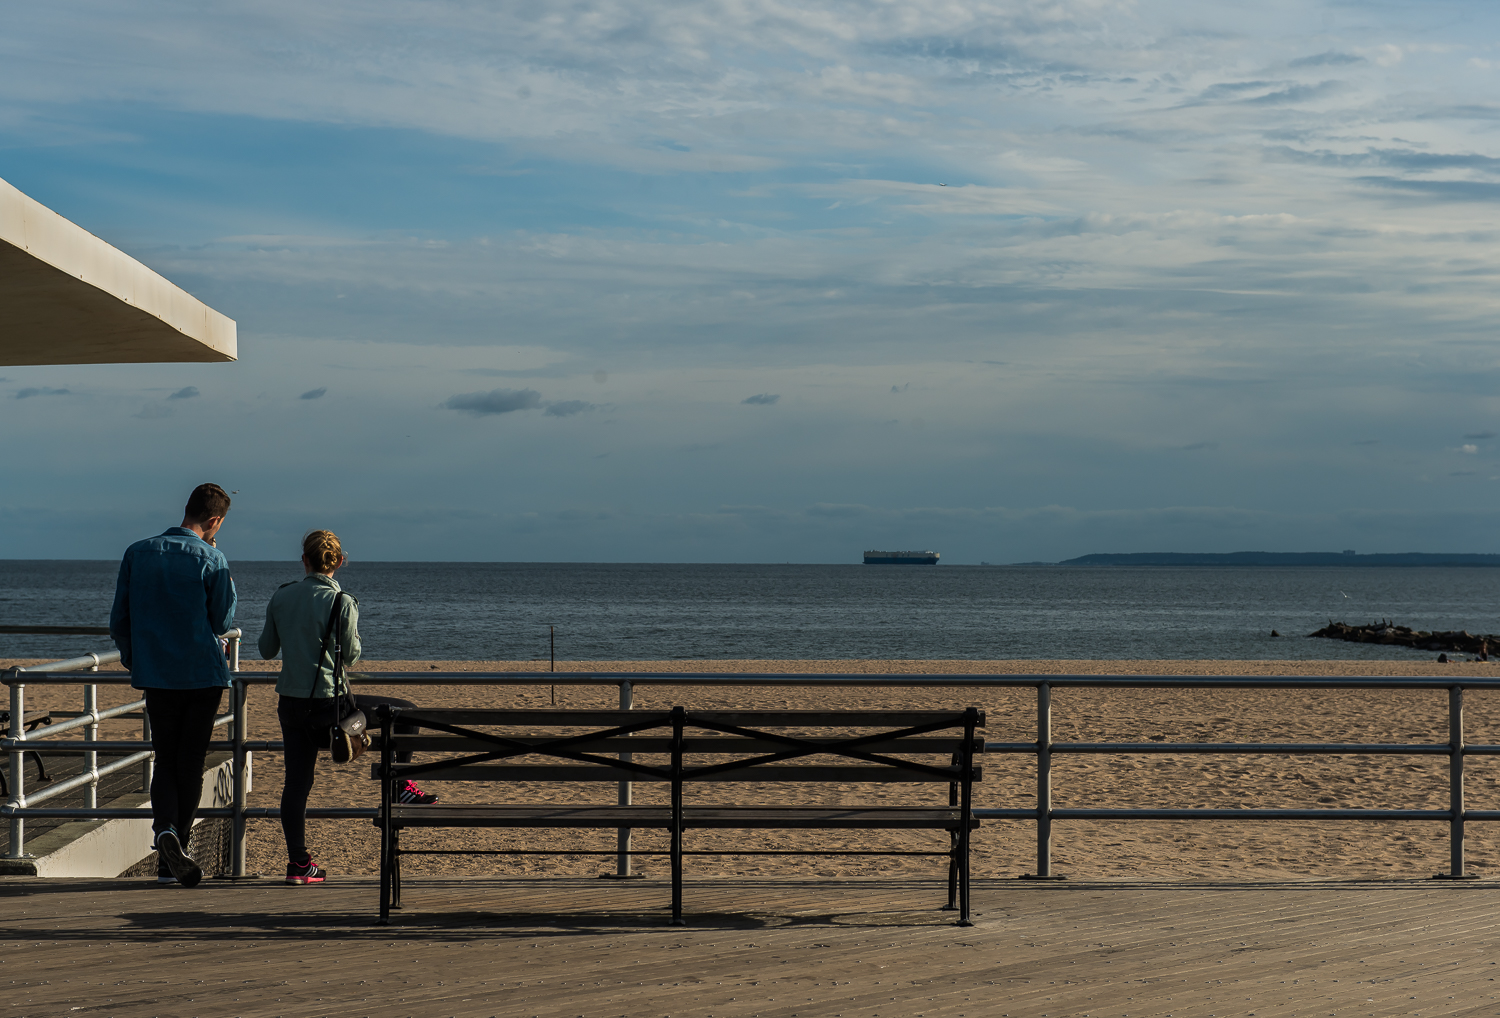 Coney Island - Taking in the view